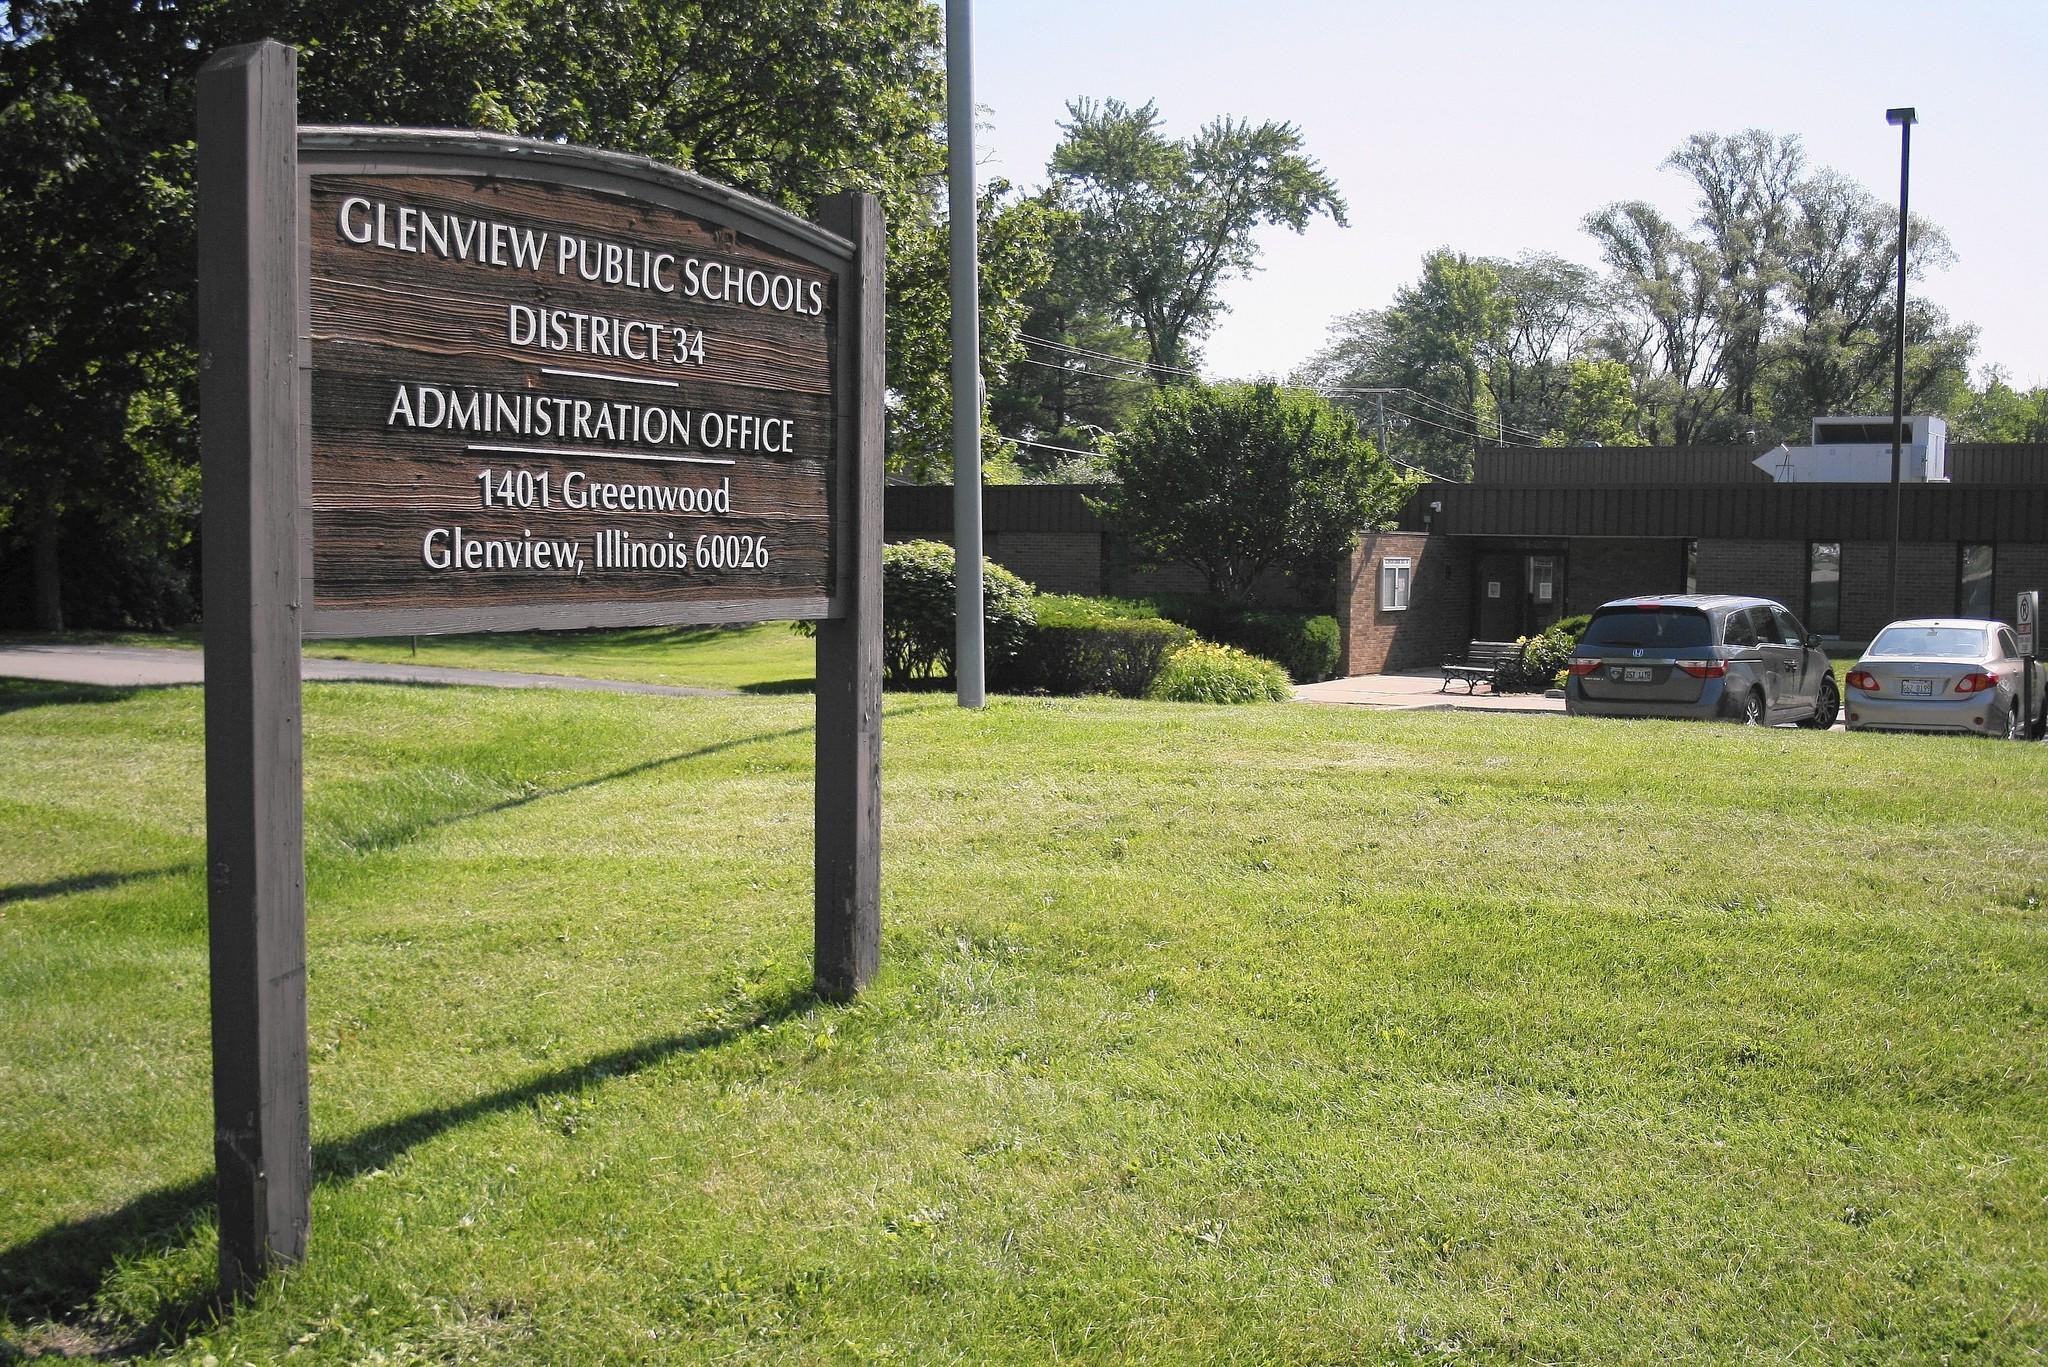 About $5 million in construction work is underway in Glenview Elementary School District 34 to repair roofs, repave parking lots and sidewalks, replace emergency generators and lights at the district's schools.